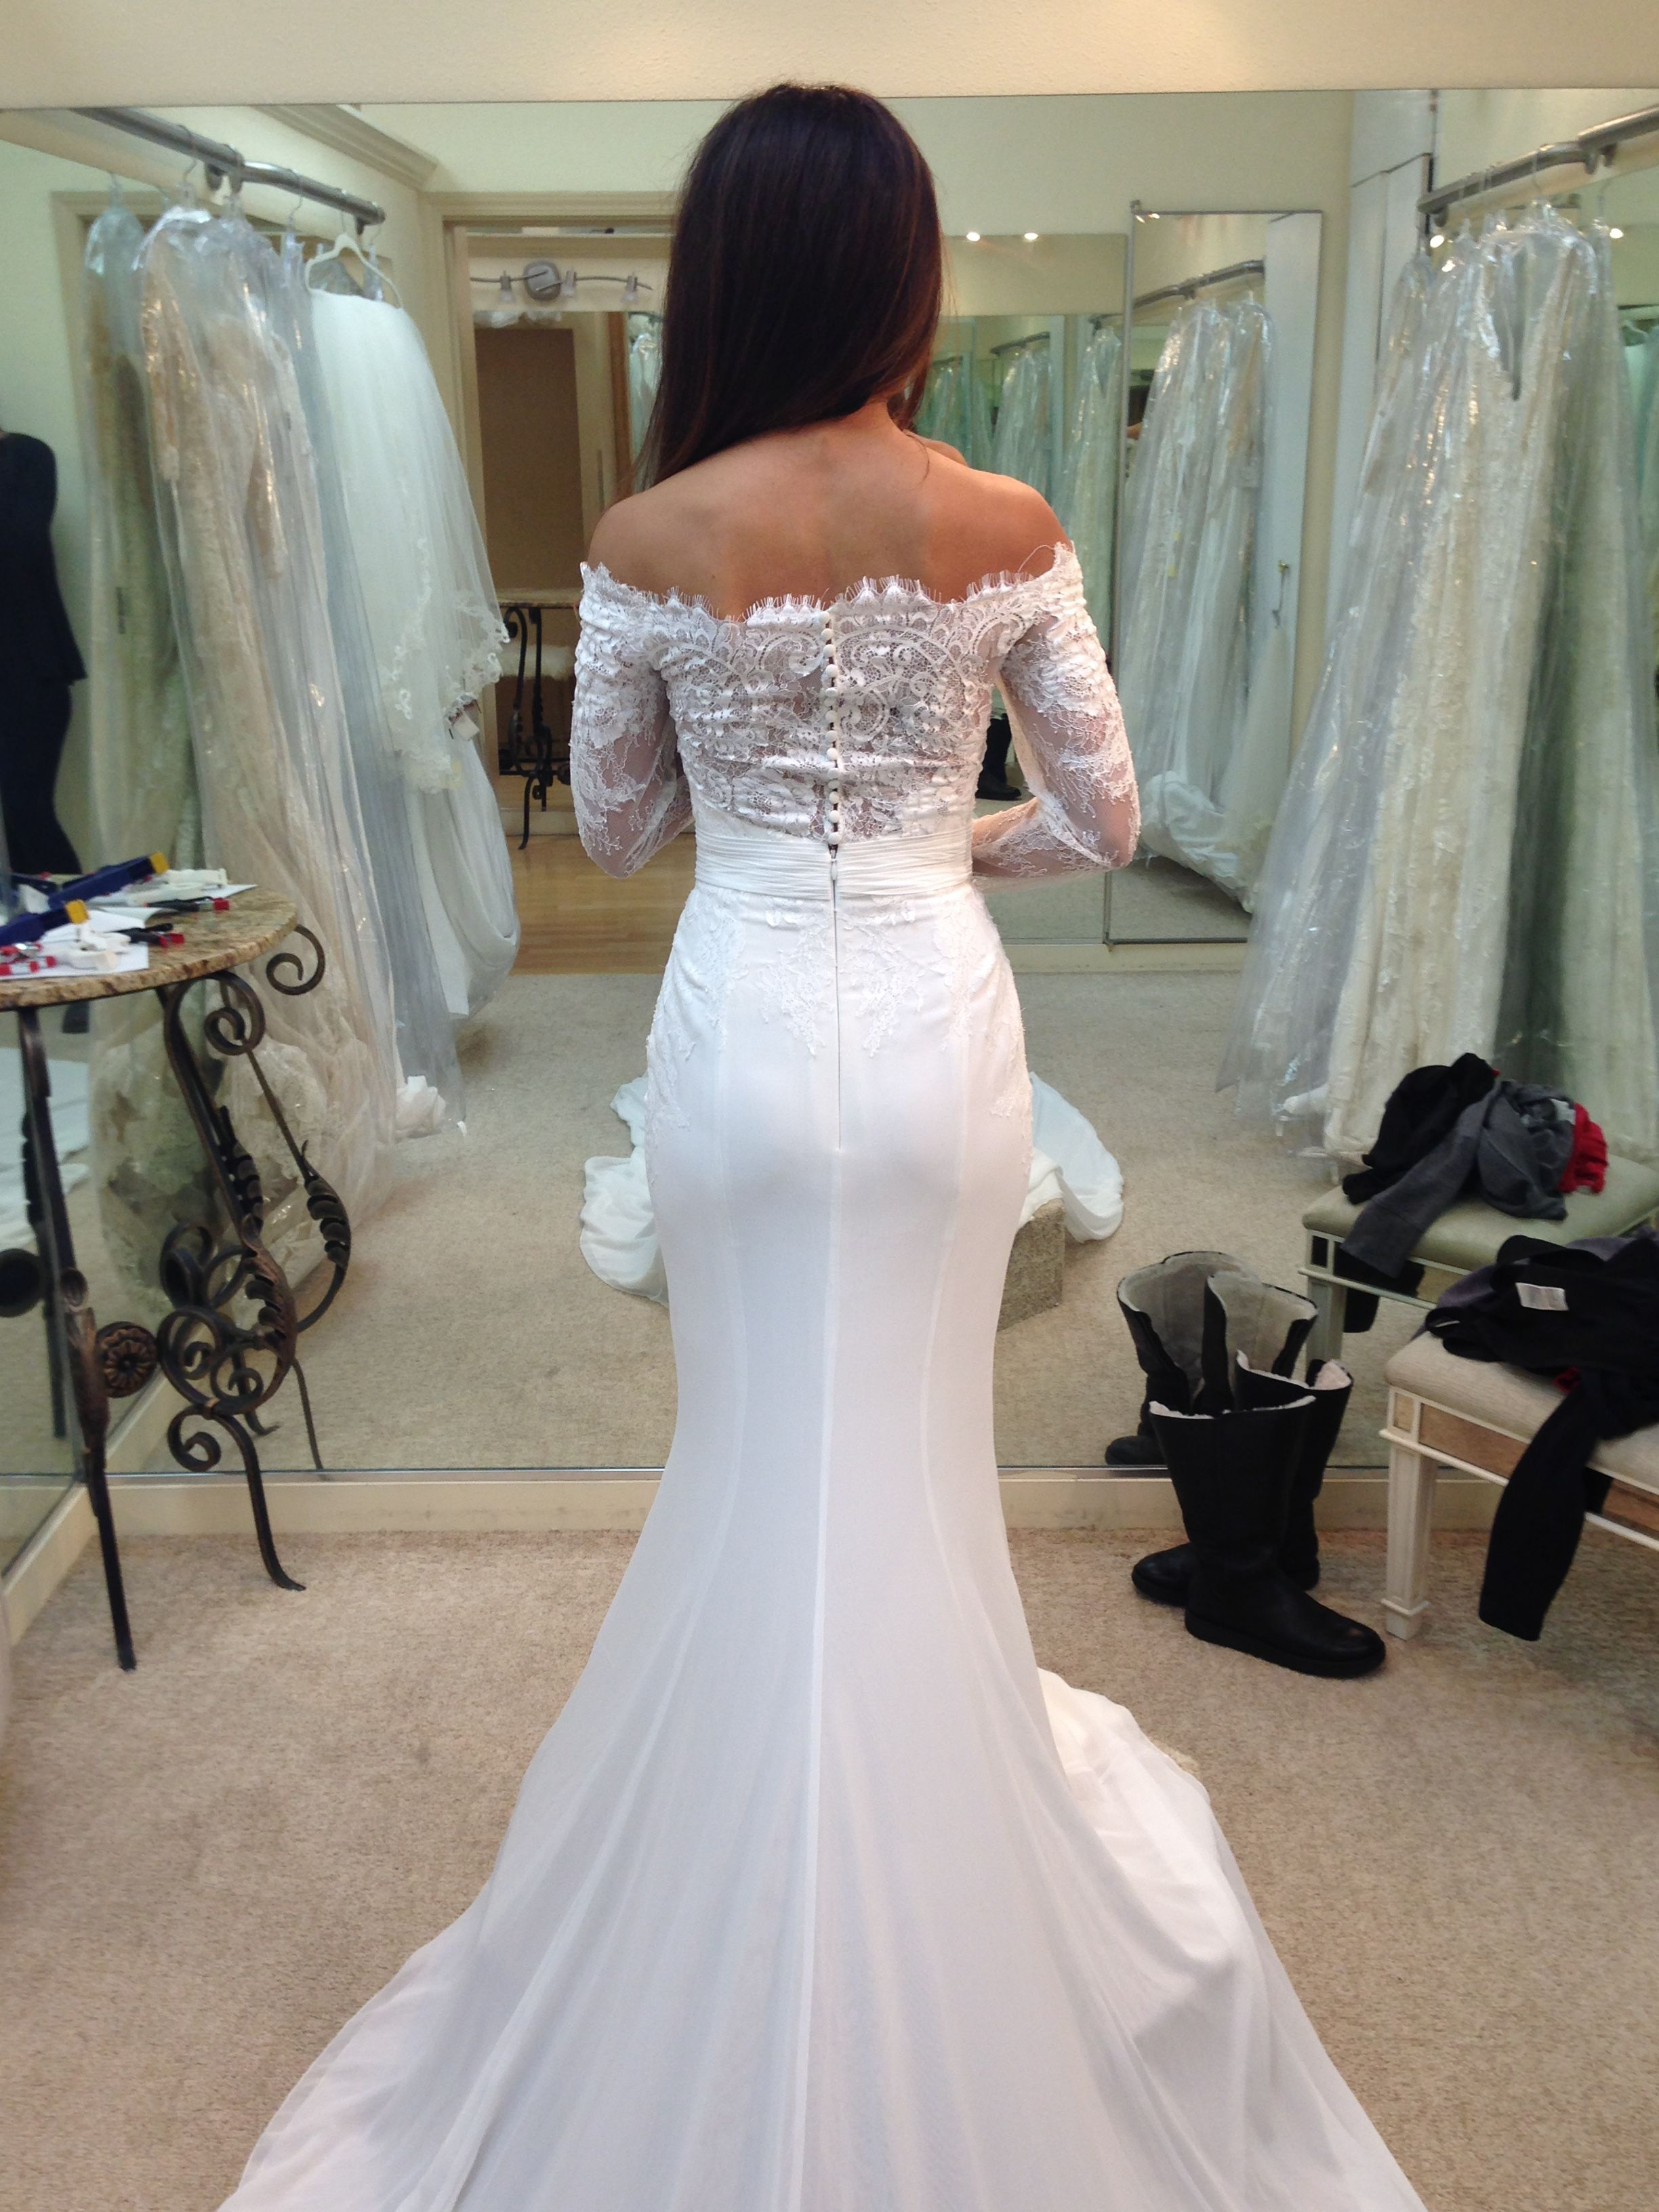 Idea by Kitty Kat on Cat's Wedding Gowns Wedding dresses